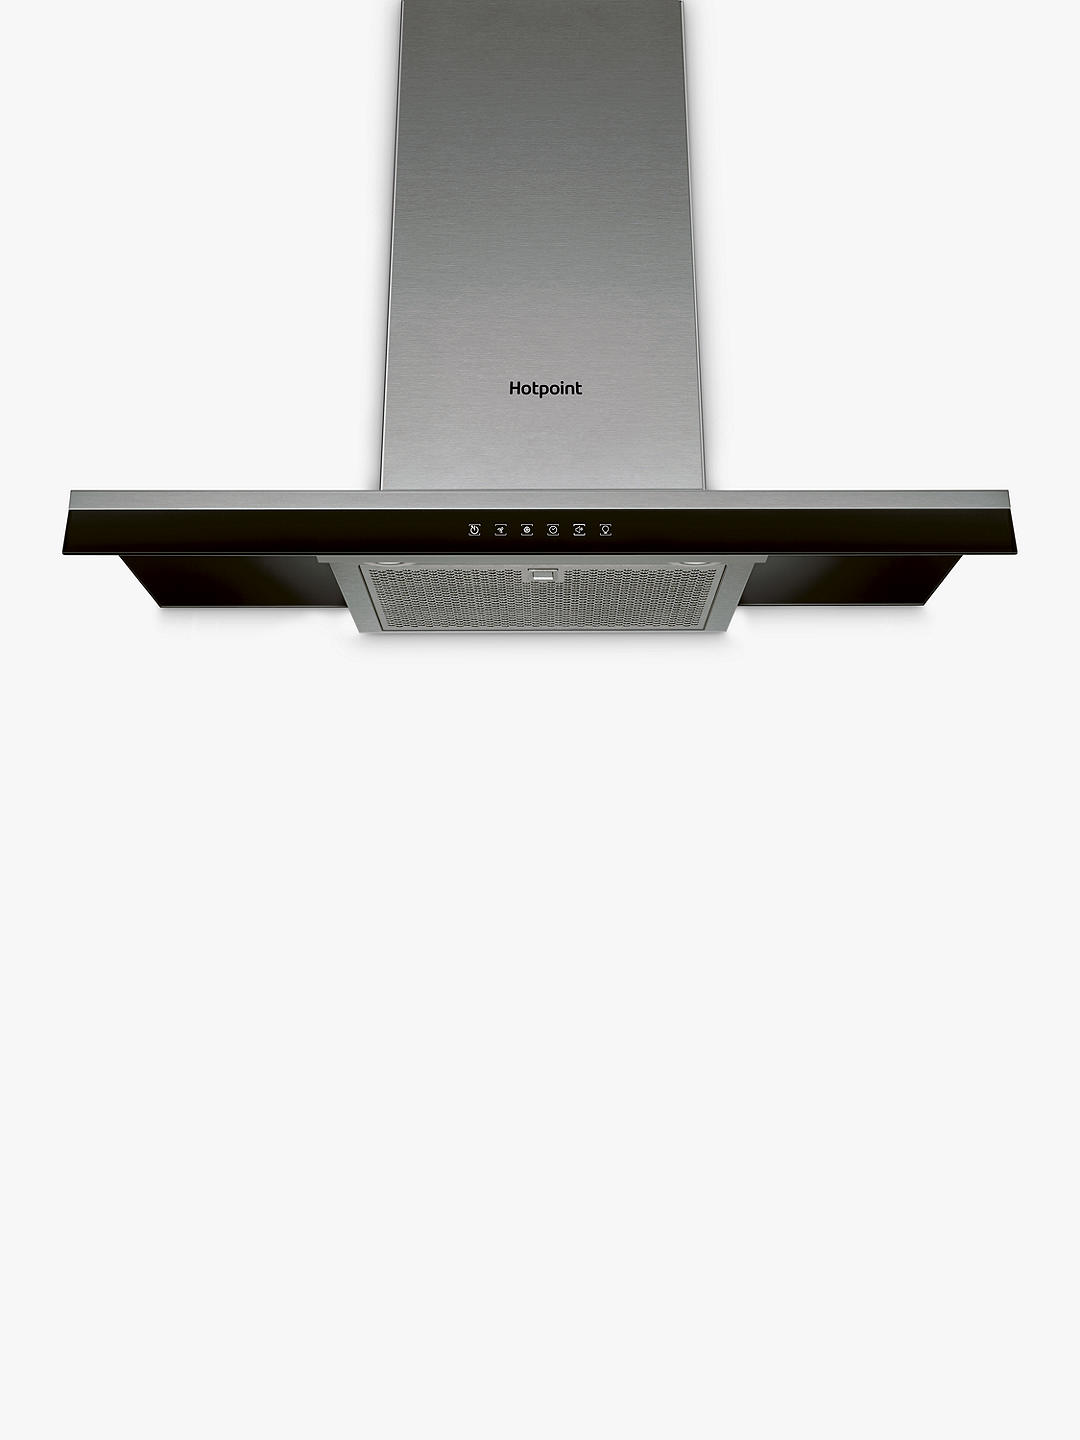 Buy Hotpoint Phbg9.8ltsix Chimney Cooker Hood, Stainless Steel Online at johnlewis.com